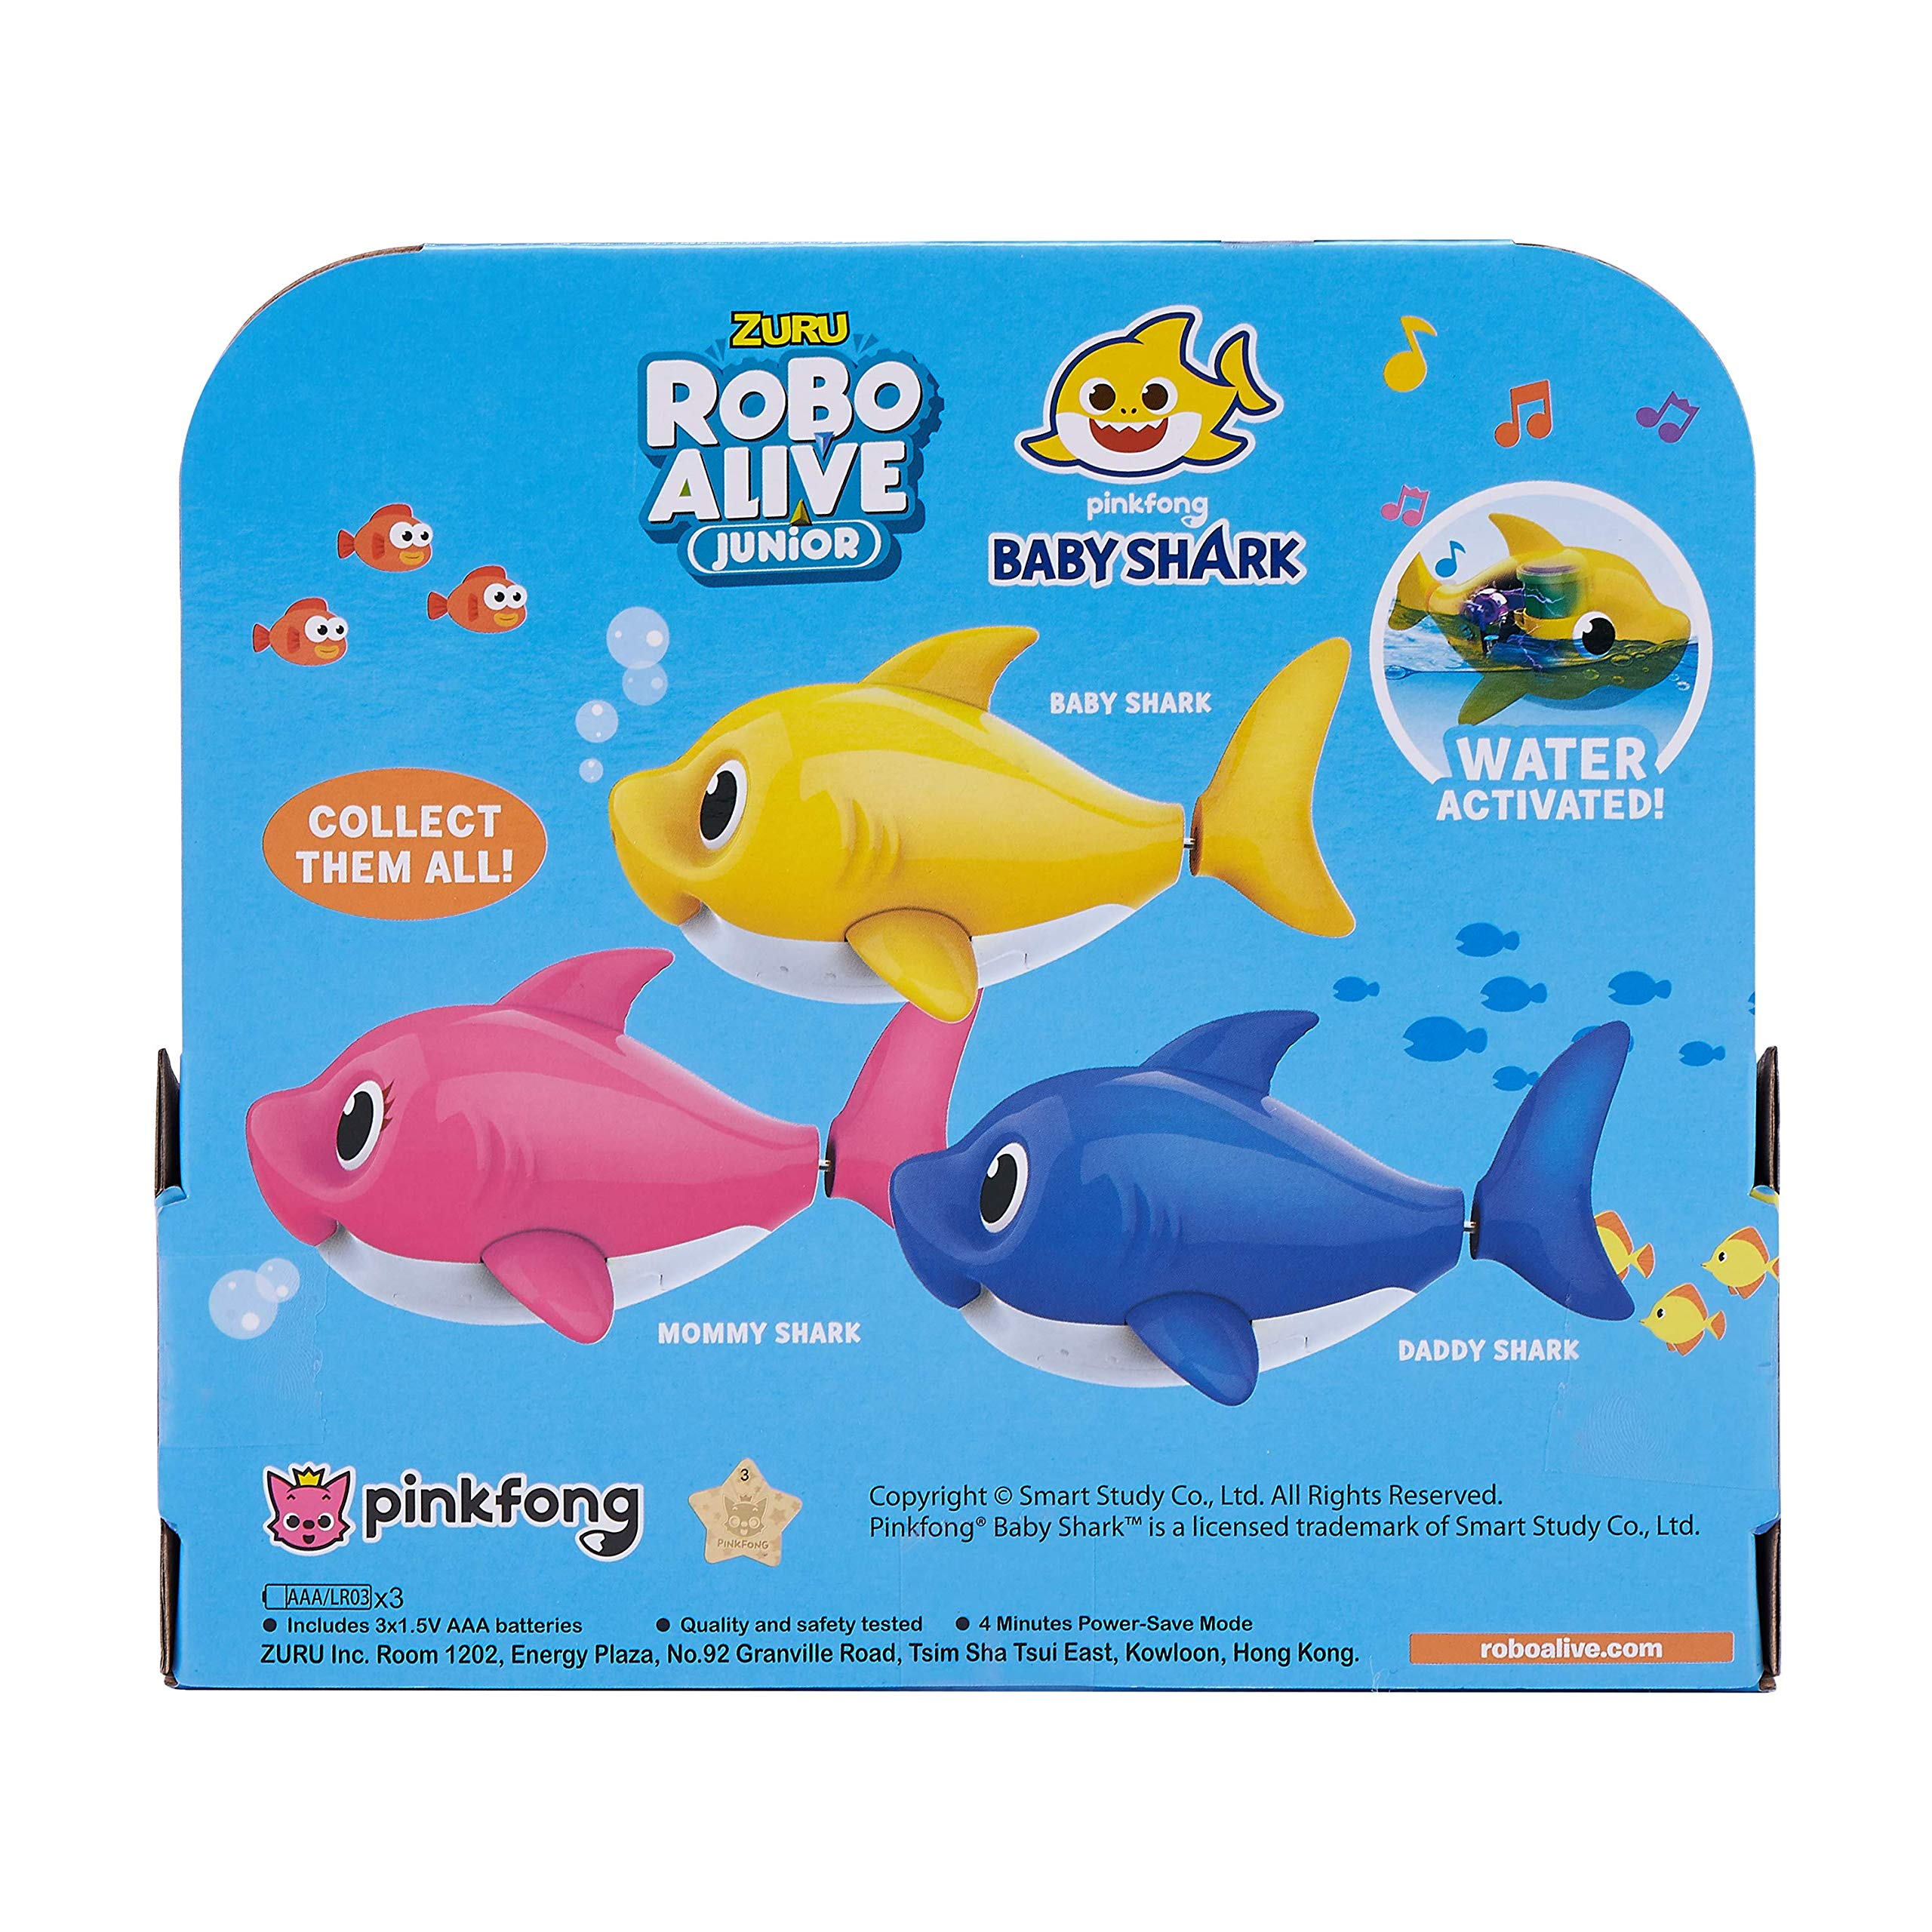 Robo Alive Junior Baby Shark Battery-Powered Sing and Swim Bath Toy by ZURU - Daddy Shark (Blue) by Robo Alive Junior (Image #5)